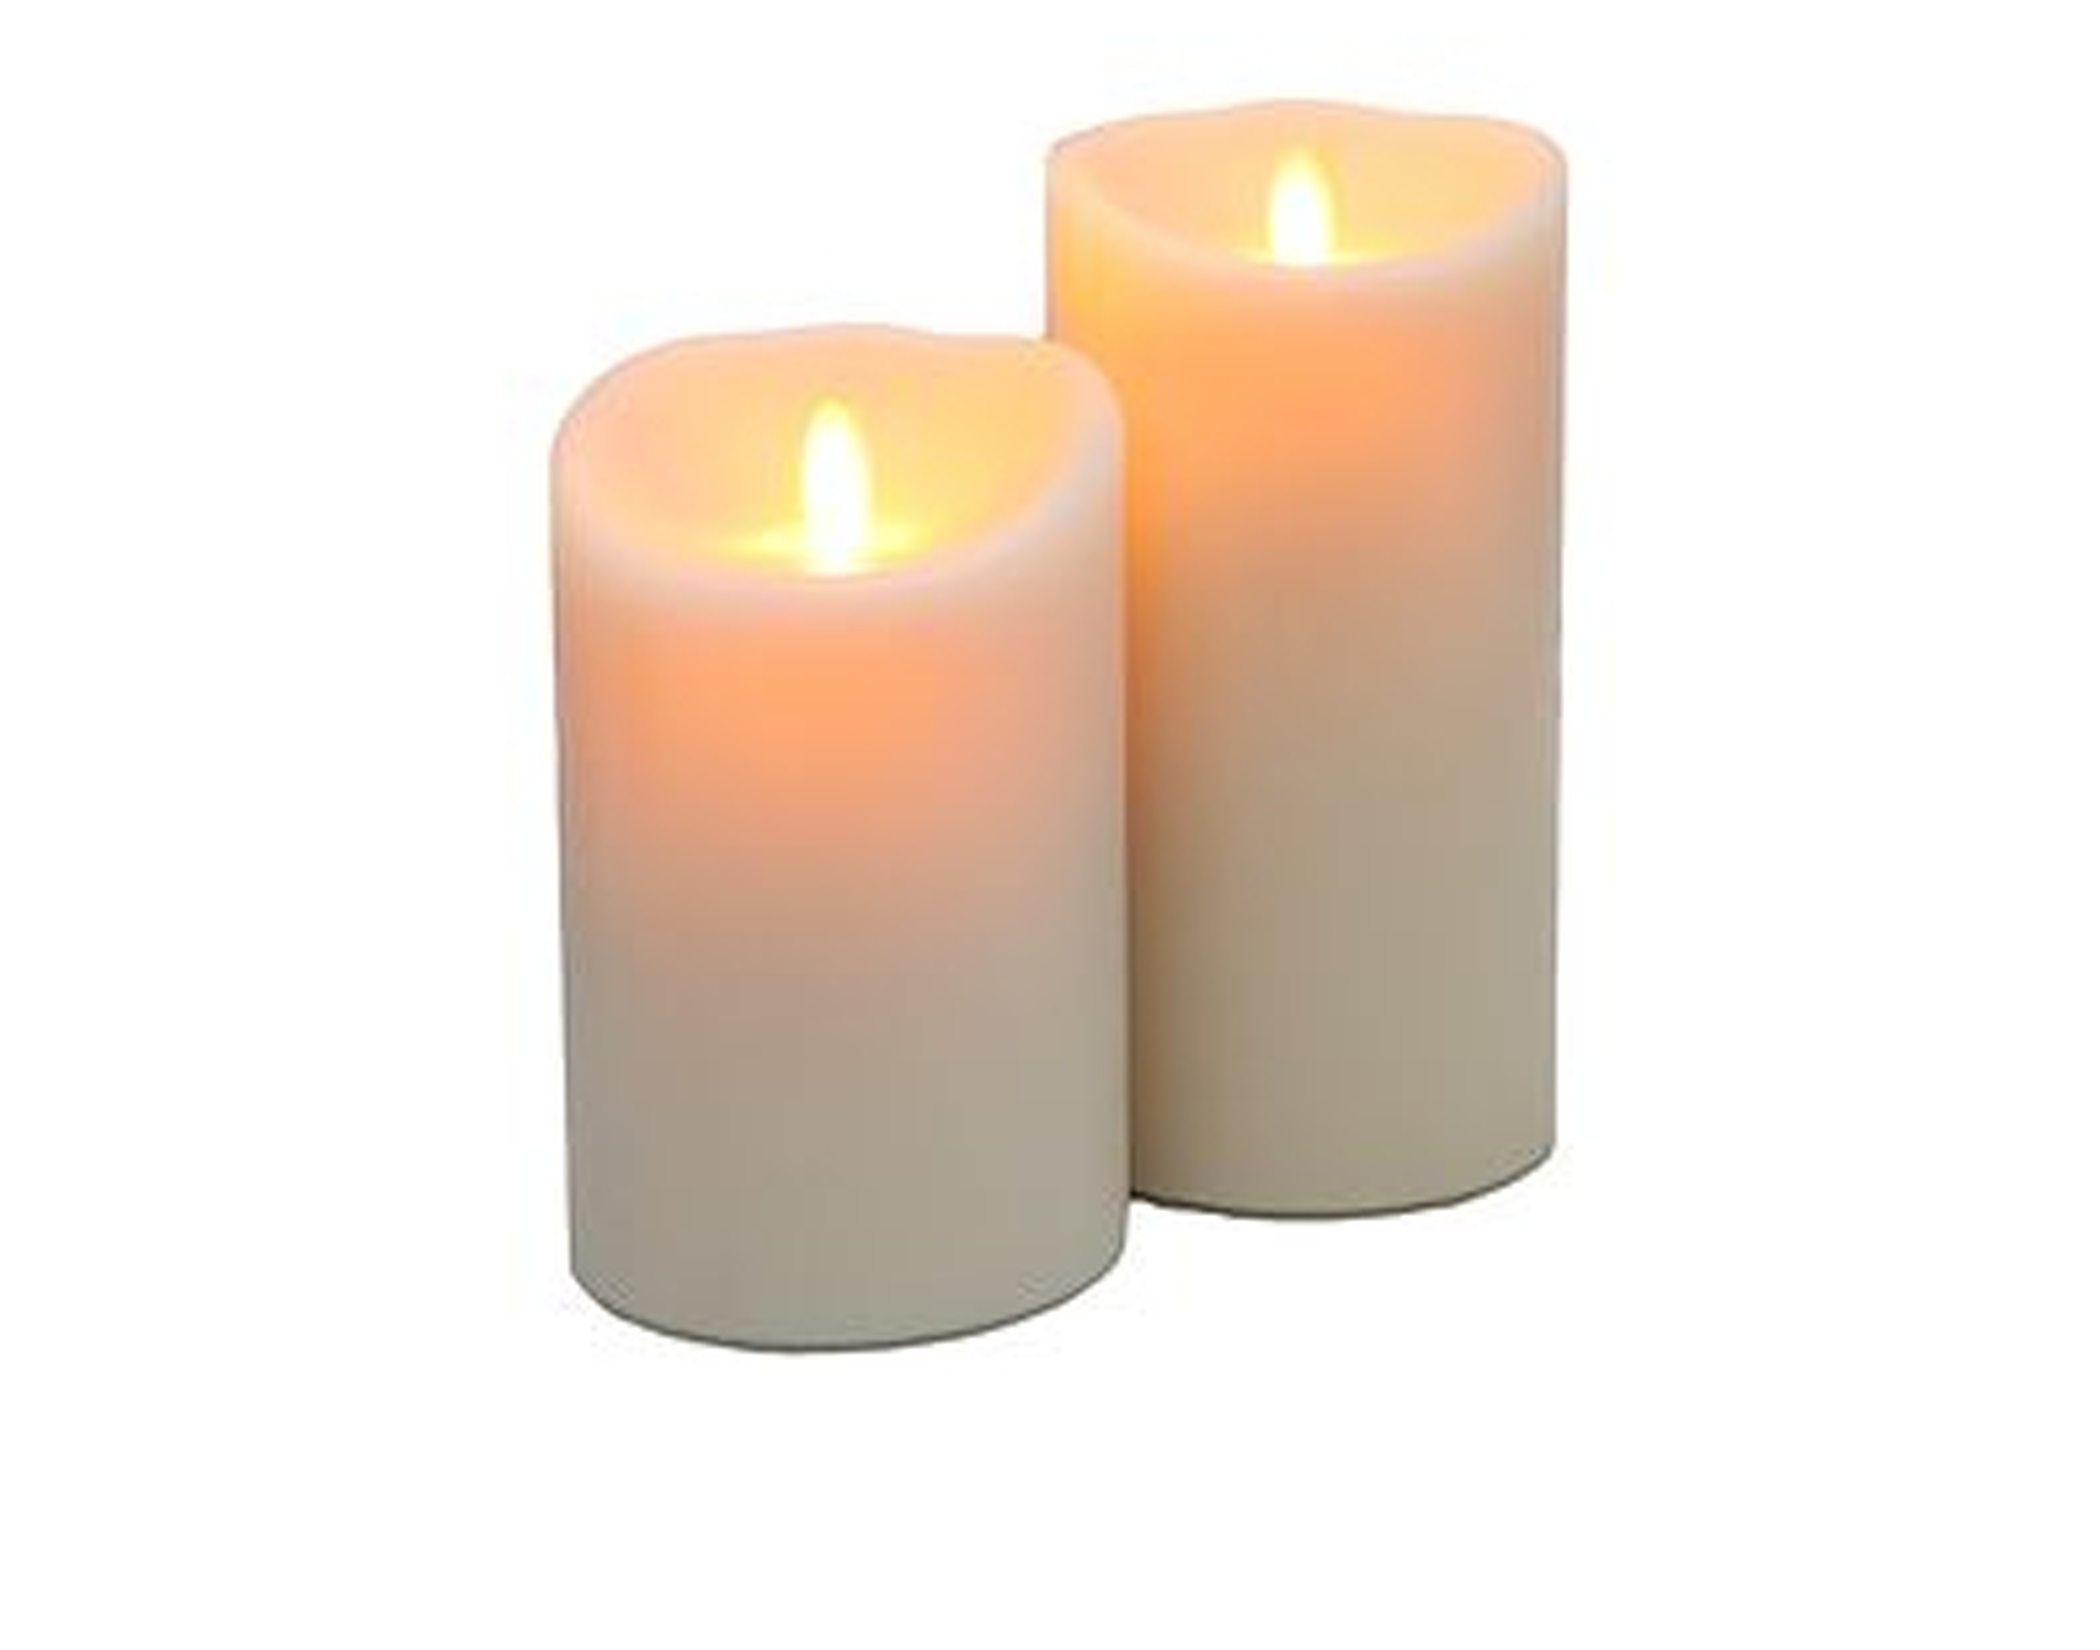 Candle png hd images. Transparent candles image black and white stock